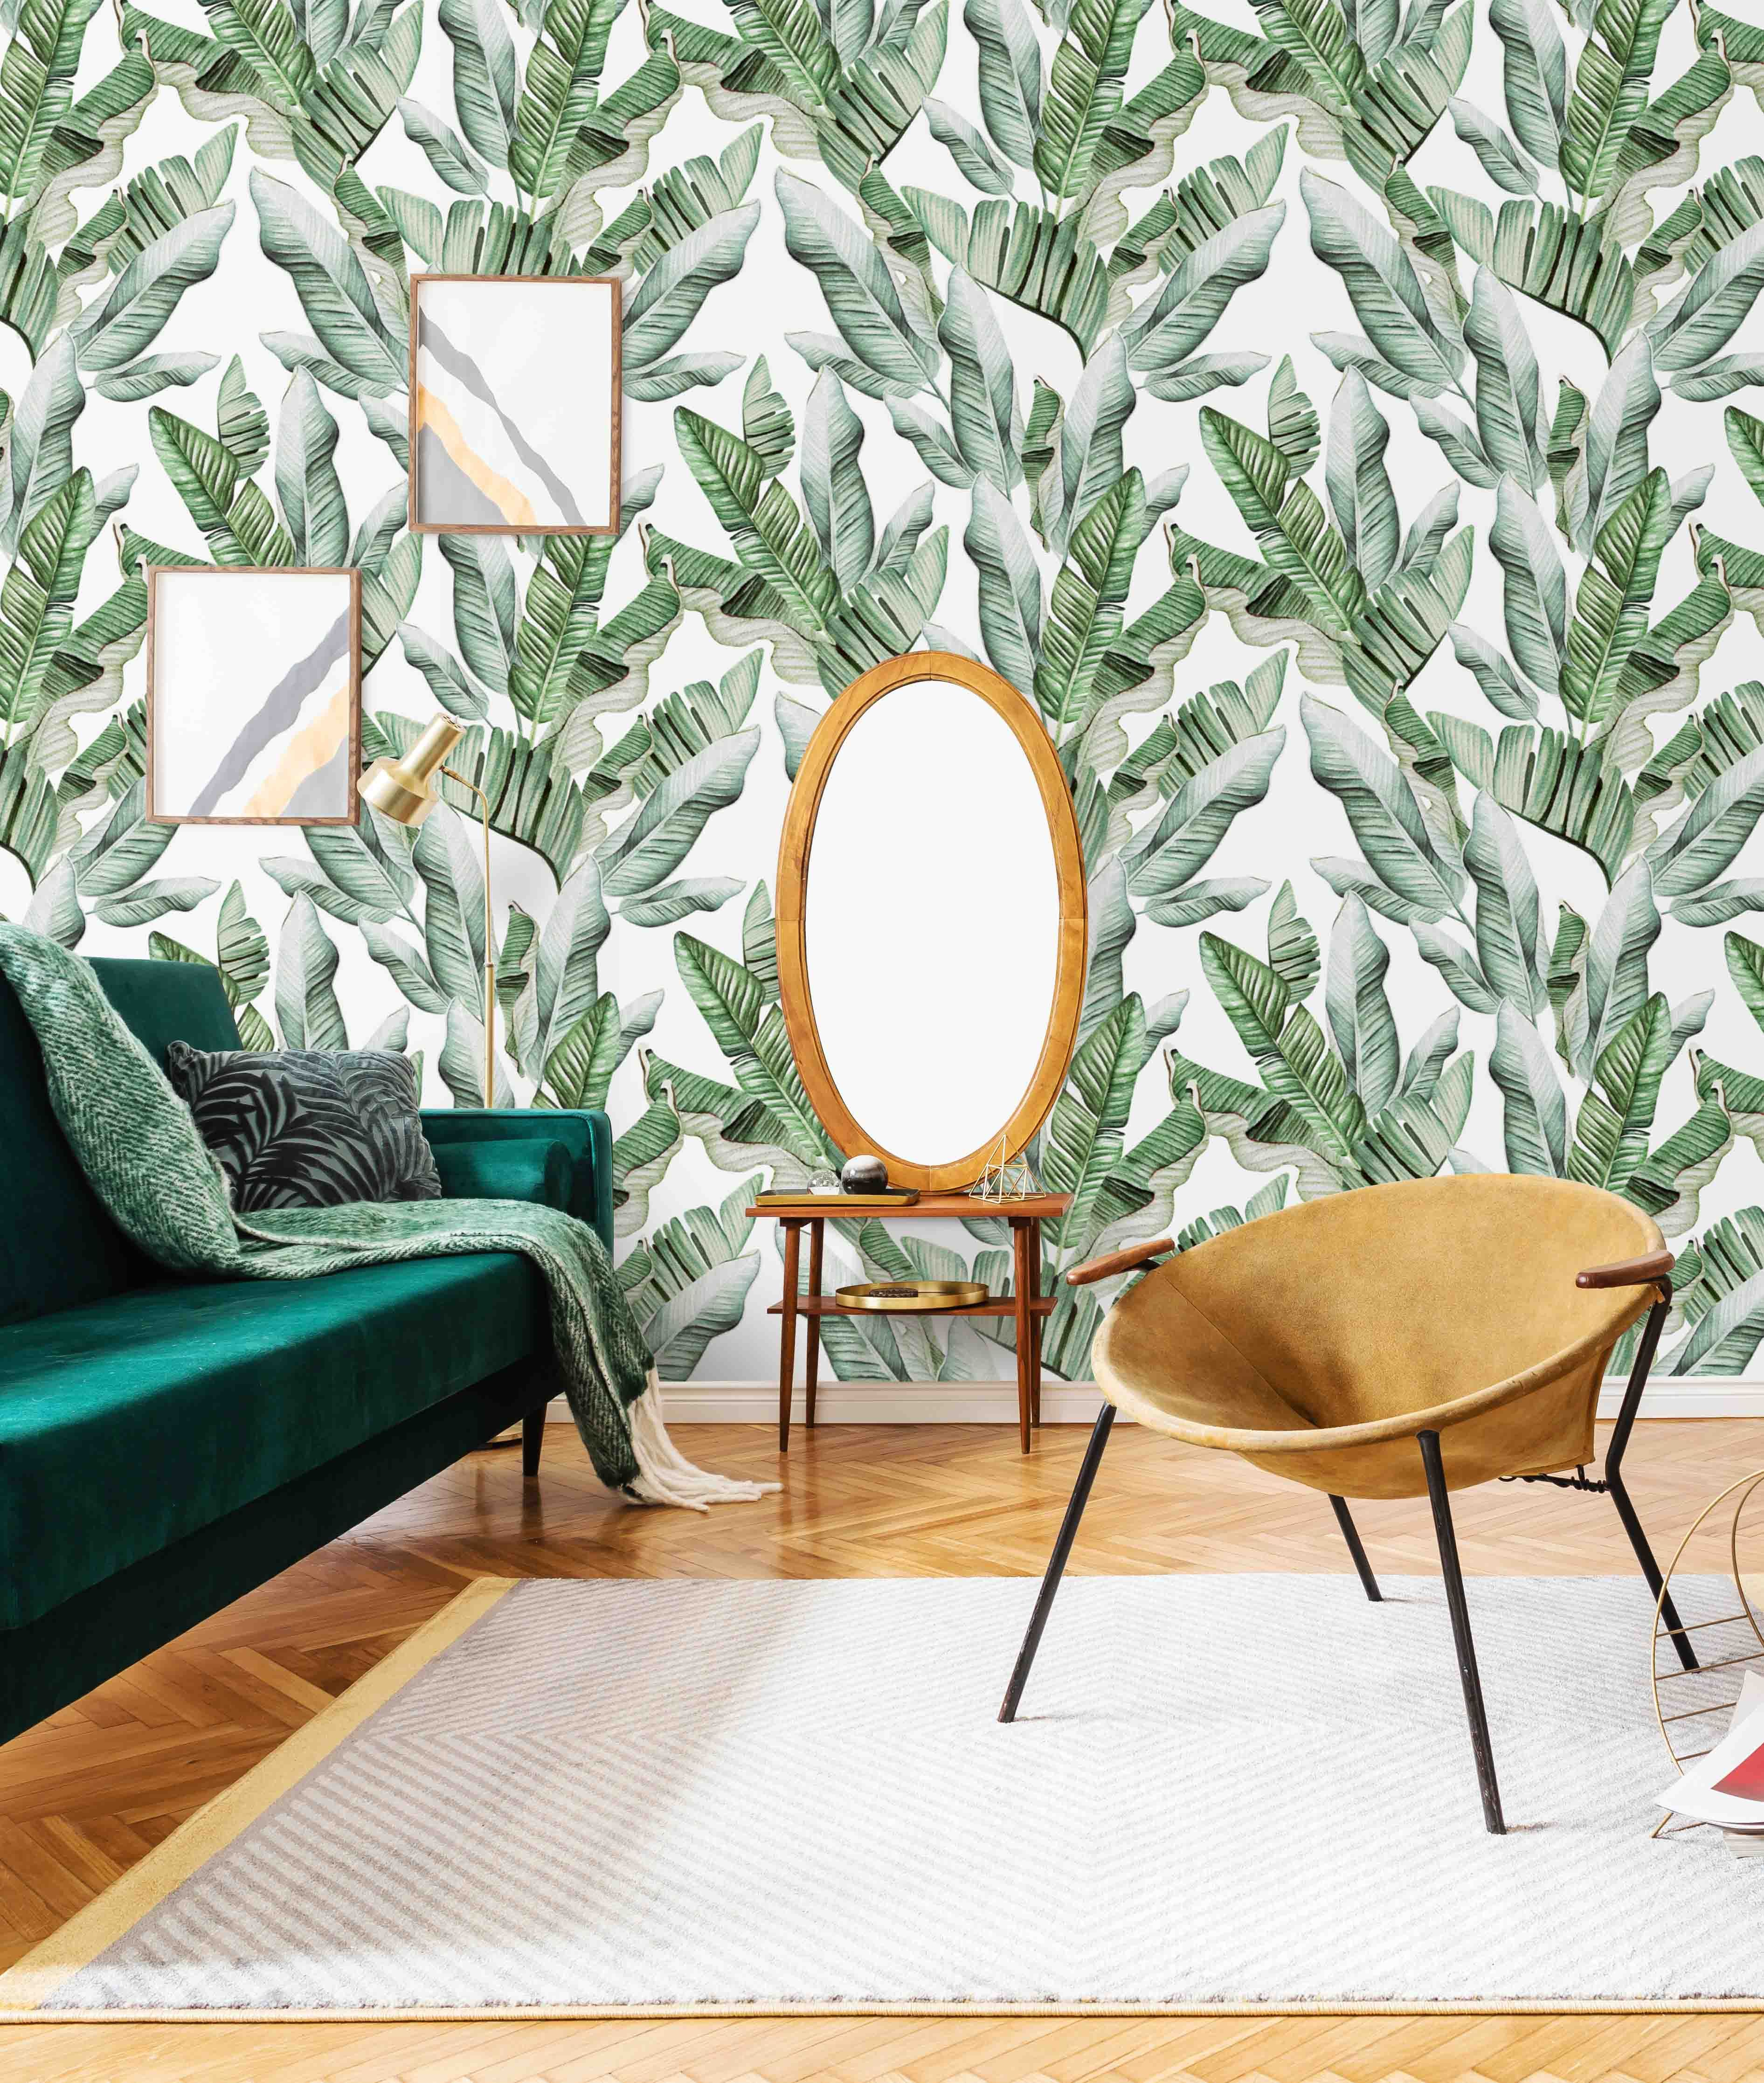 Palms On Beige Wallpaper Removable Peel And Stick Wallpapers Etsy Tropical Wallpaper Palm Leaf Wallpaper Tropical Home Decor